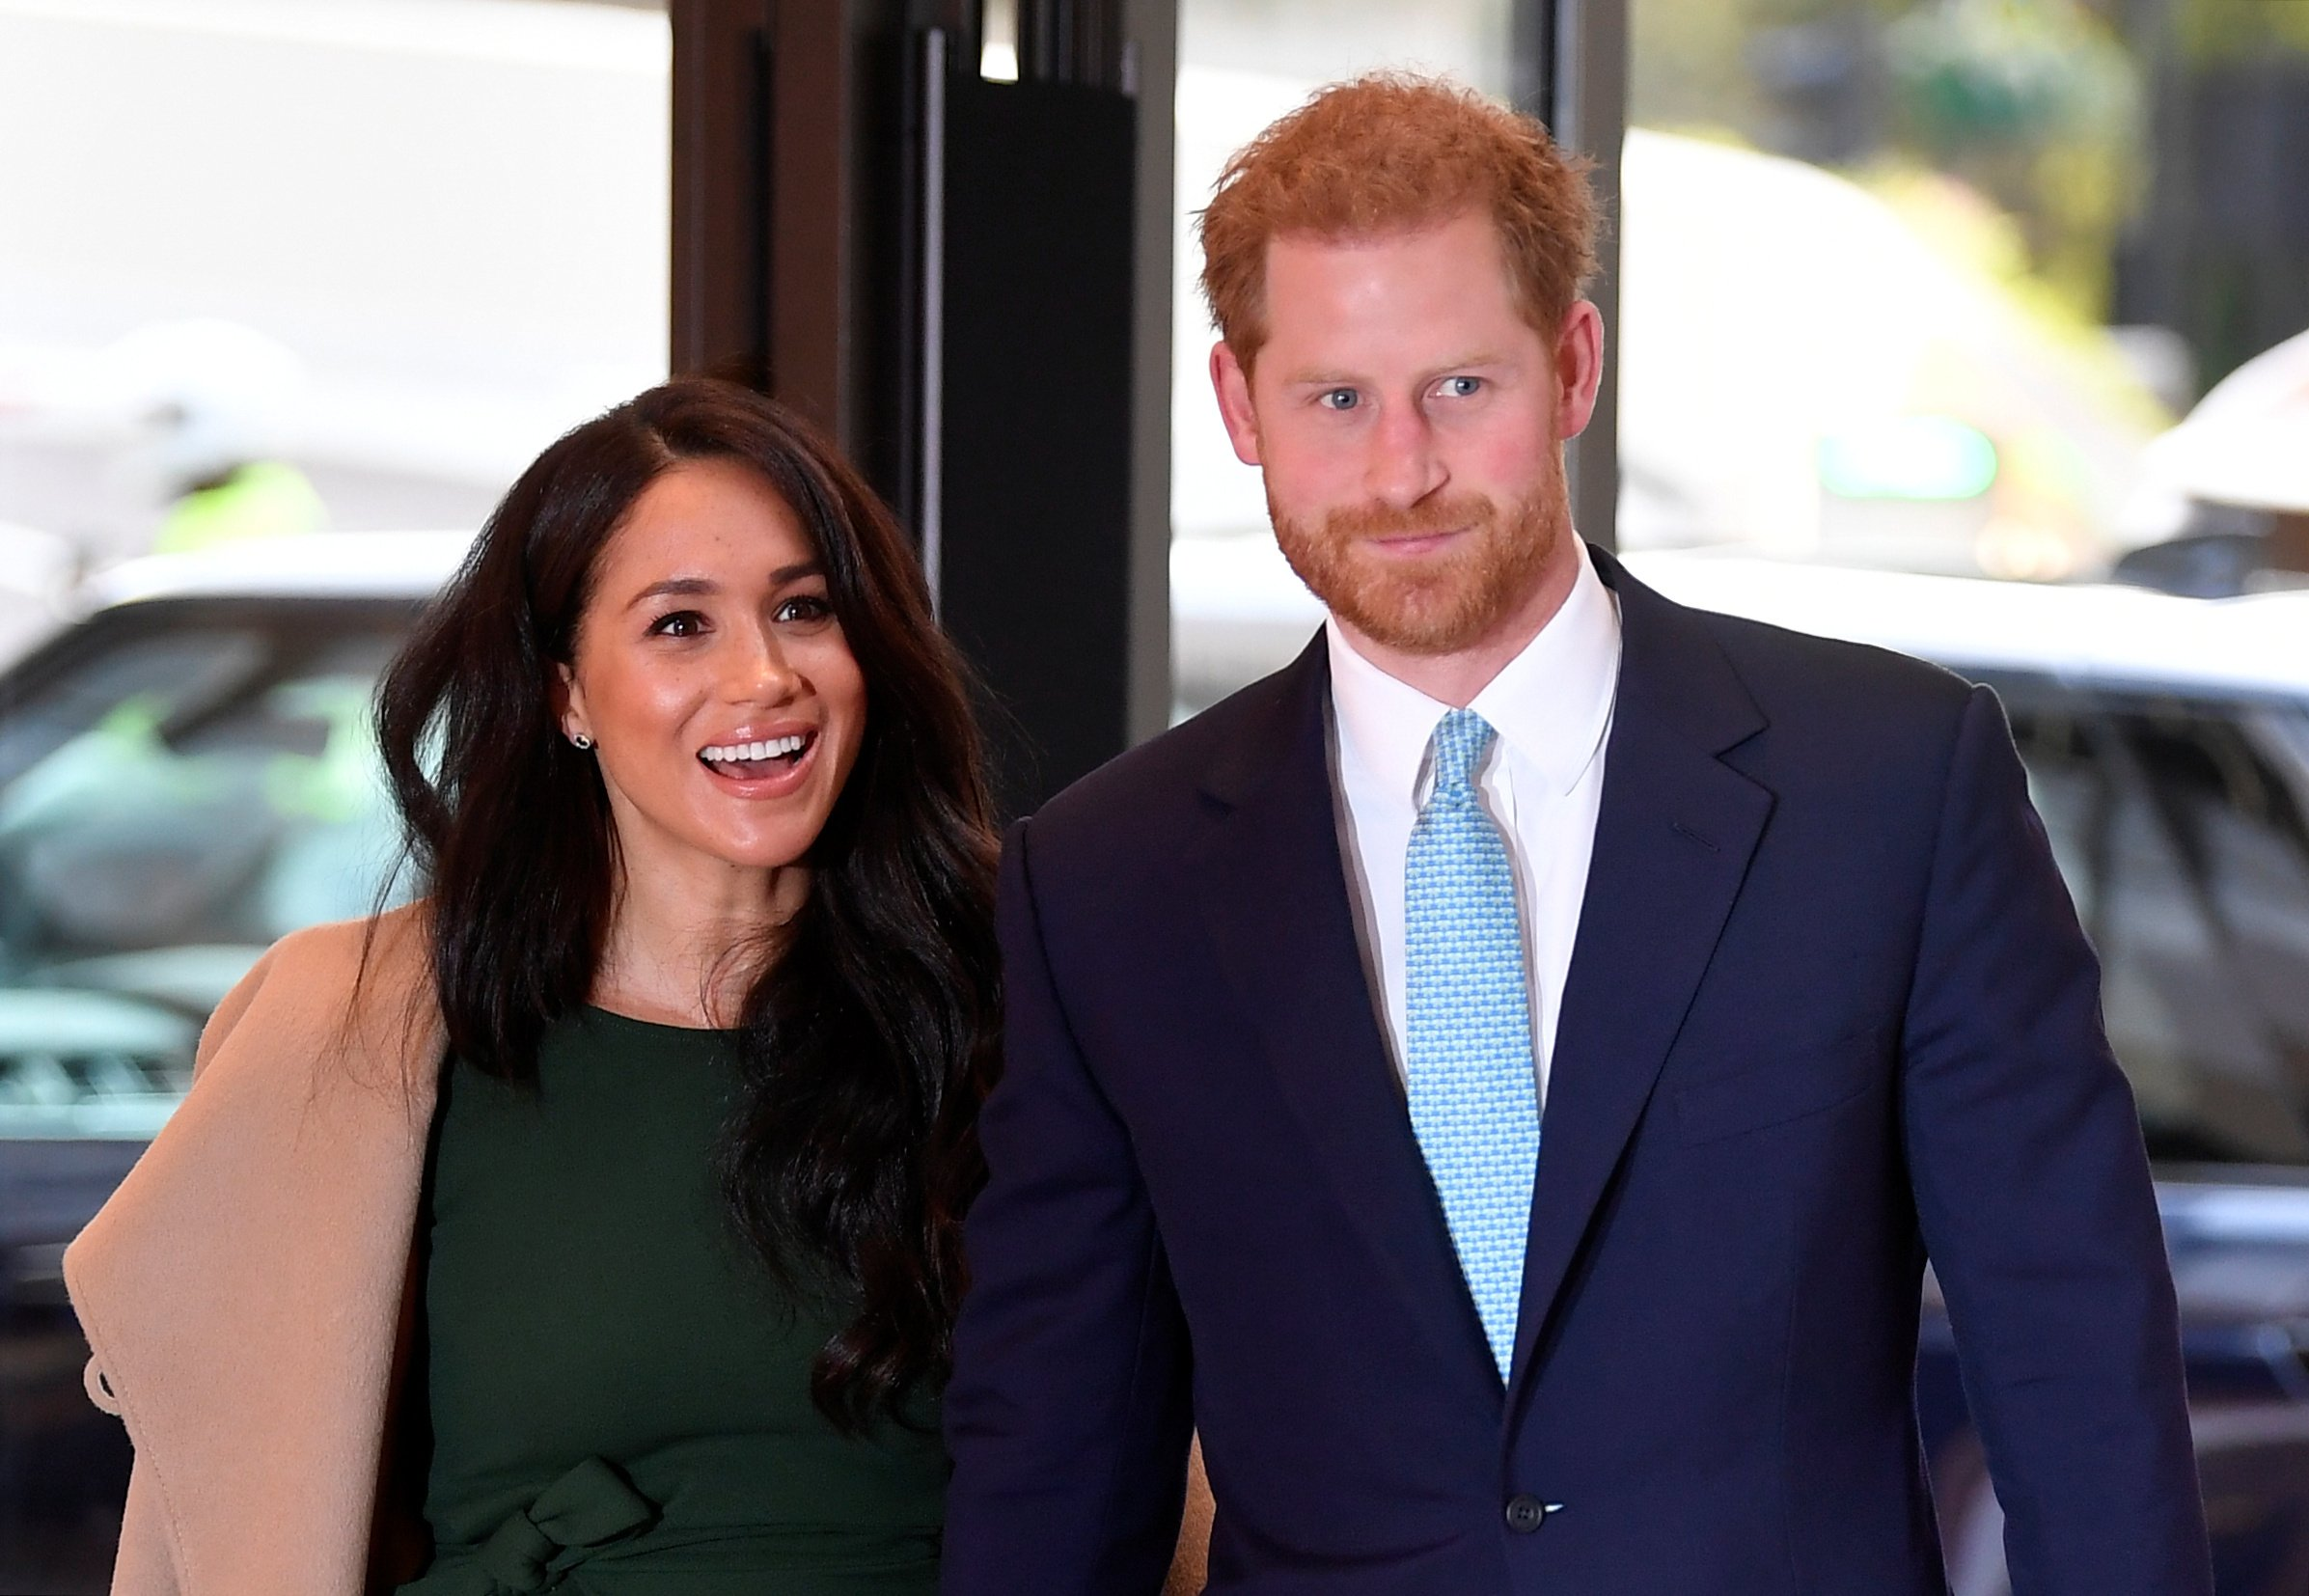 Meghan Markle and Prince Harry attend the WellChild awards in London, England on October 15, 2019 | Photo: Getty Images